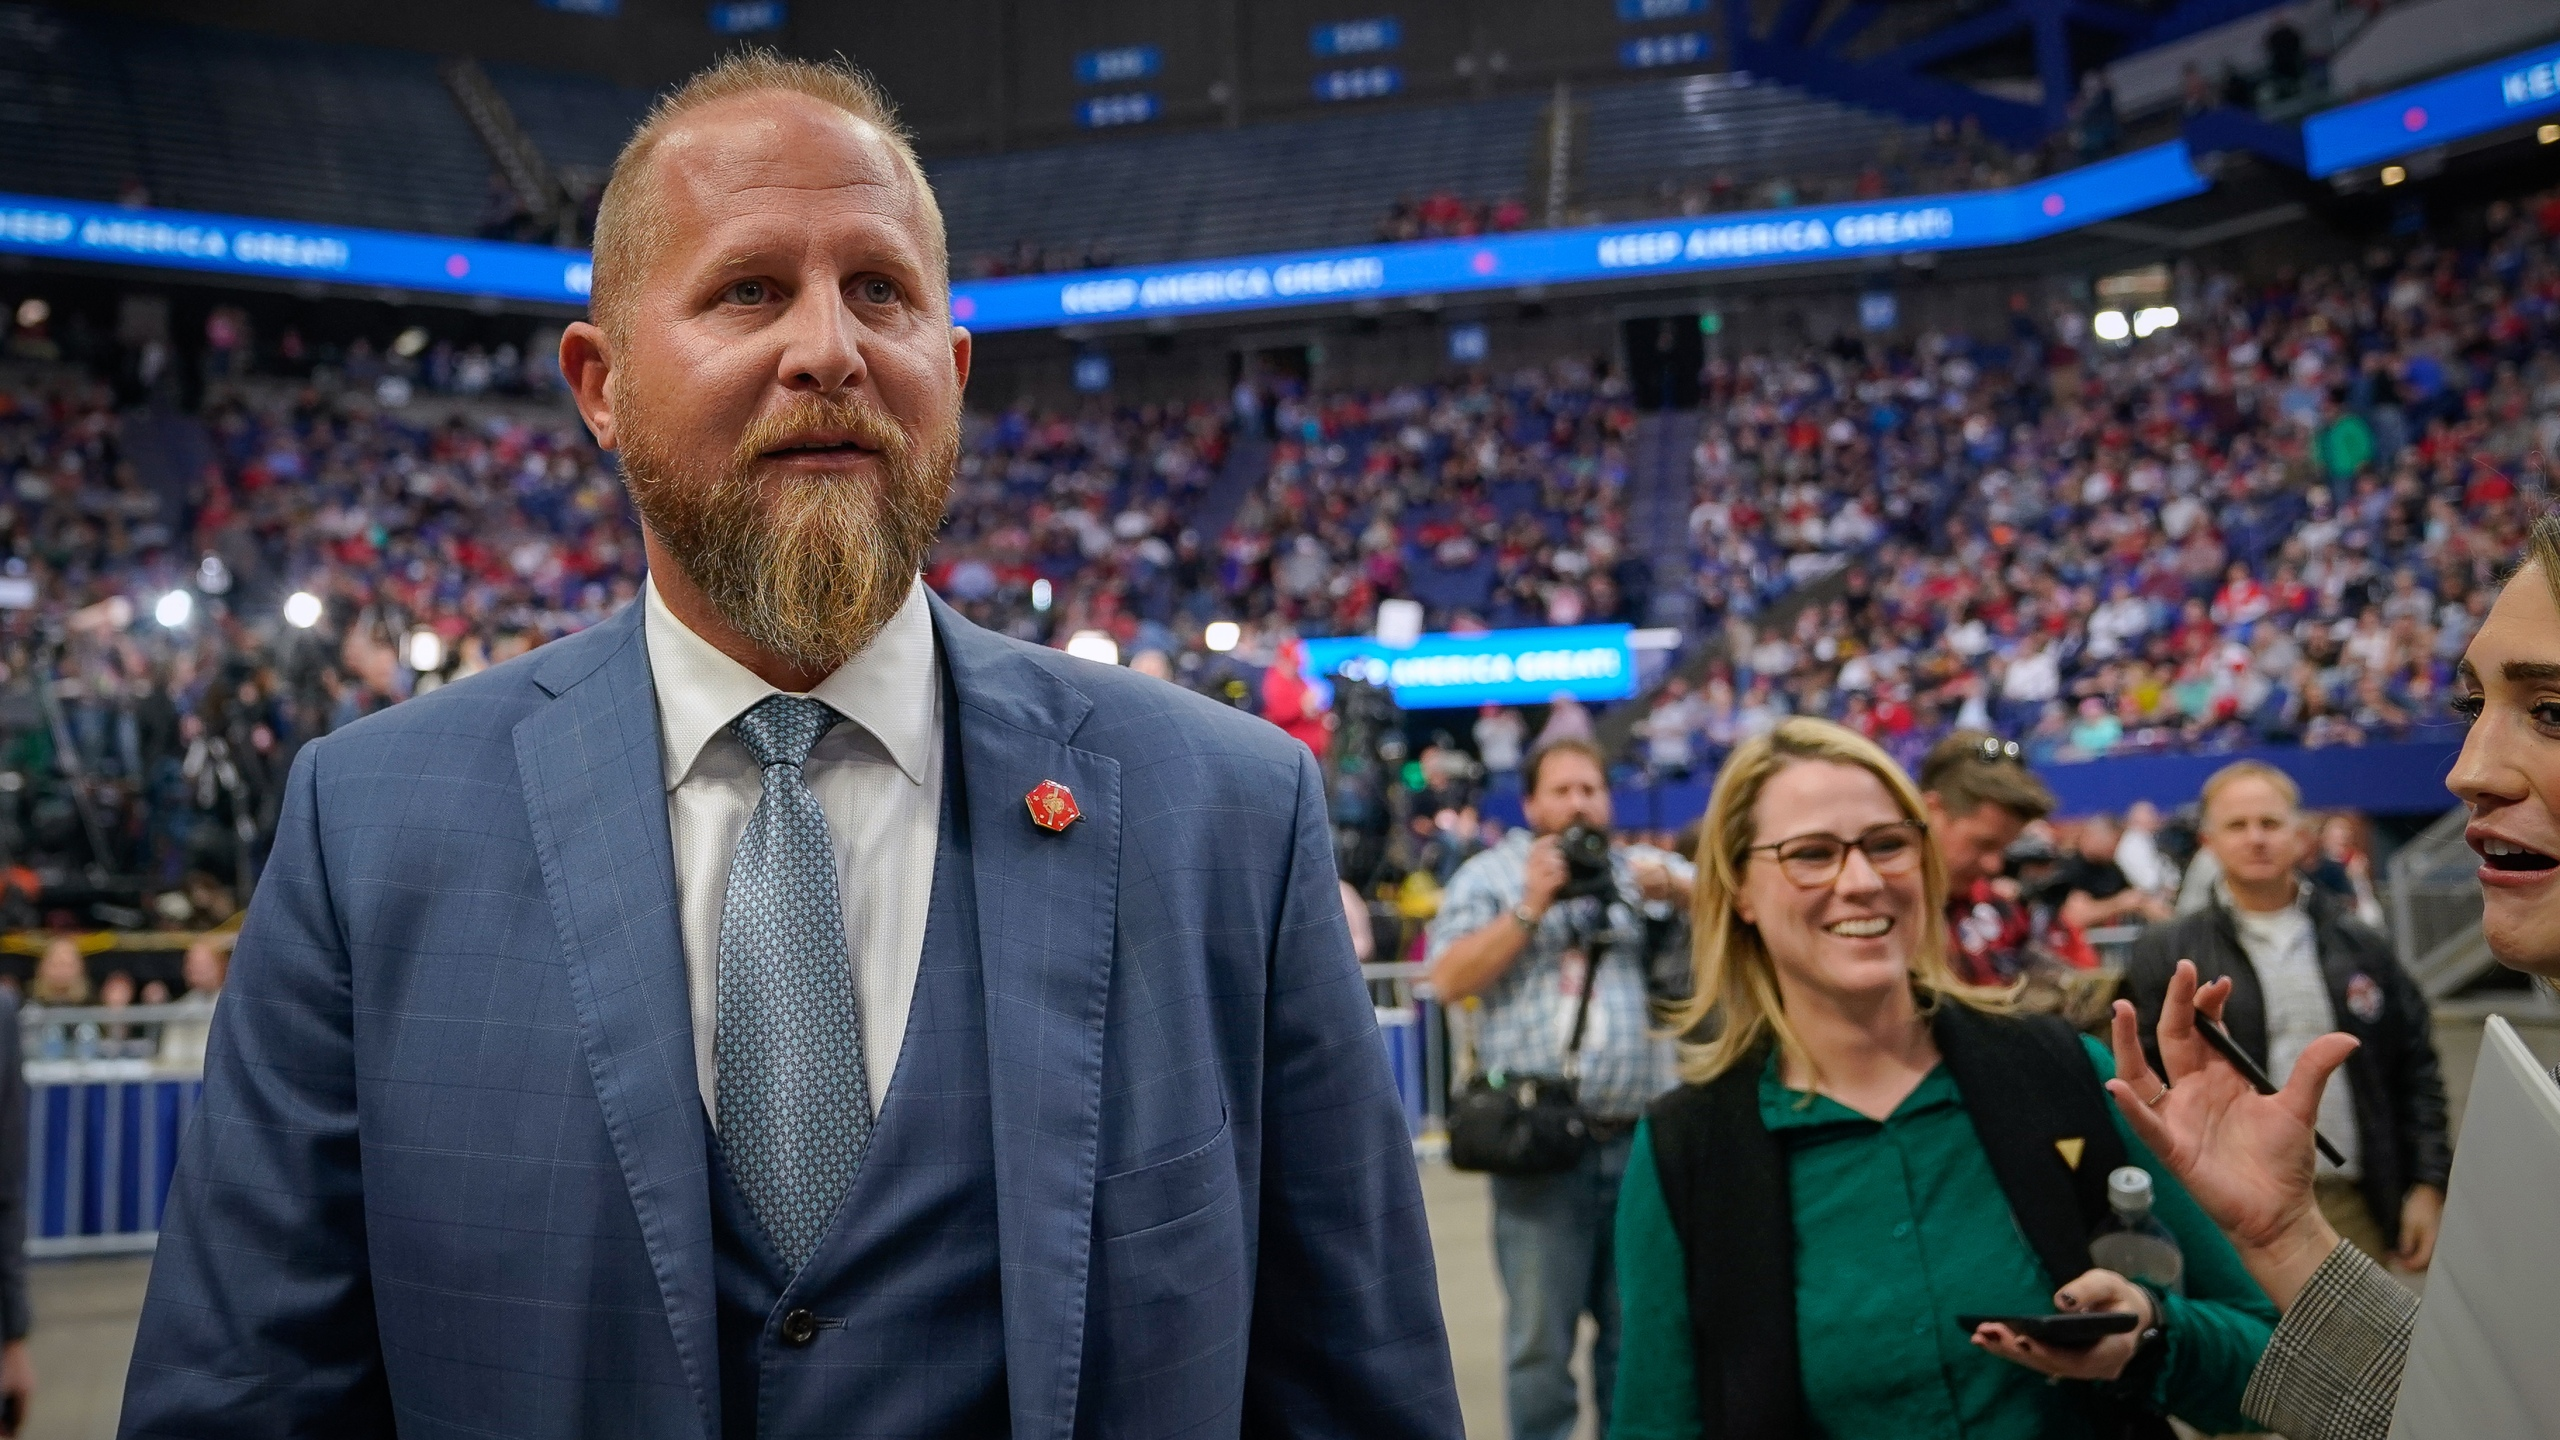 Brad Parscale, campaign manager for U.S. President Donald Trump, arrives at a campaign rally for the President at Rupp Arena on Nov. 4, 2019 in Lexington, Kentucky. The President is visiting Kentucky a day before Election Day to support the reelection efforts of Republican Governor Matt Bevin. (Bryan Woolston/Getty Images)